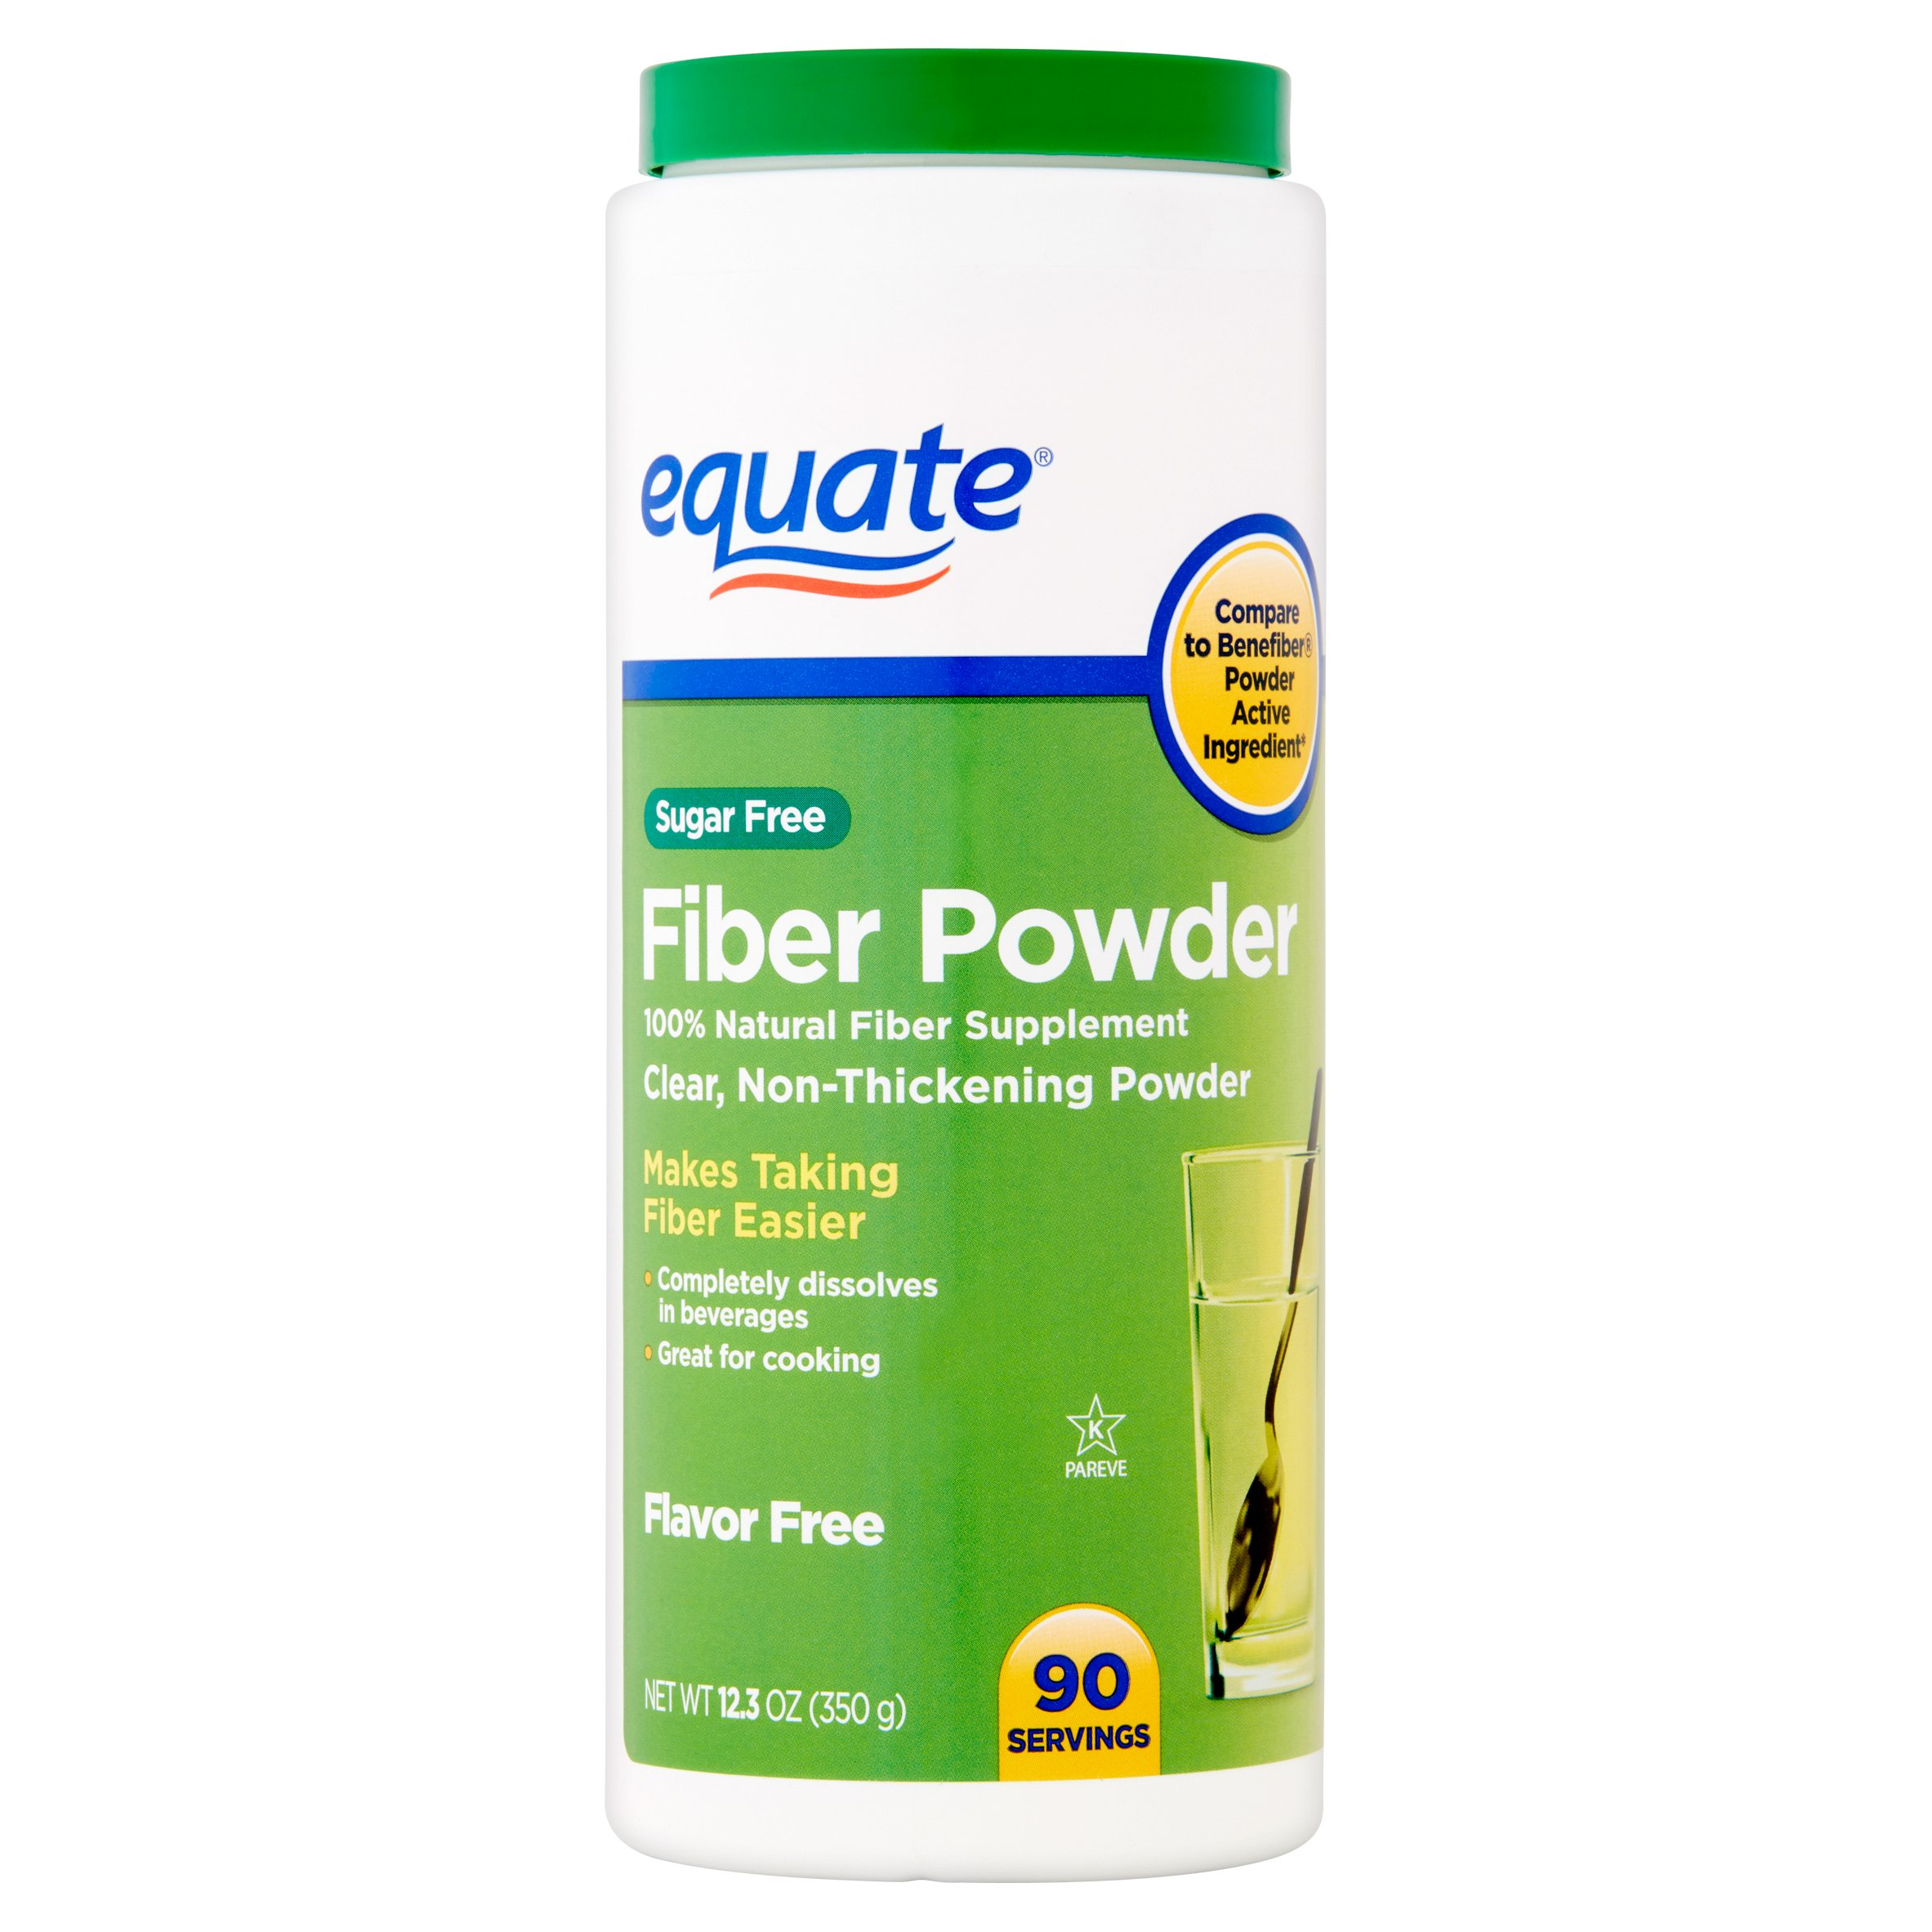 Equate Sugar Free Fiber Powder, 90 Ct, 12.3 Oz